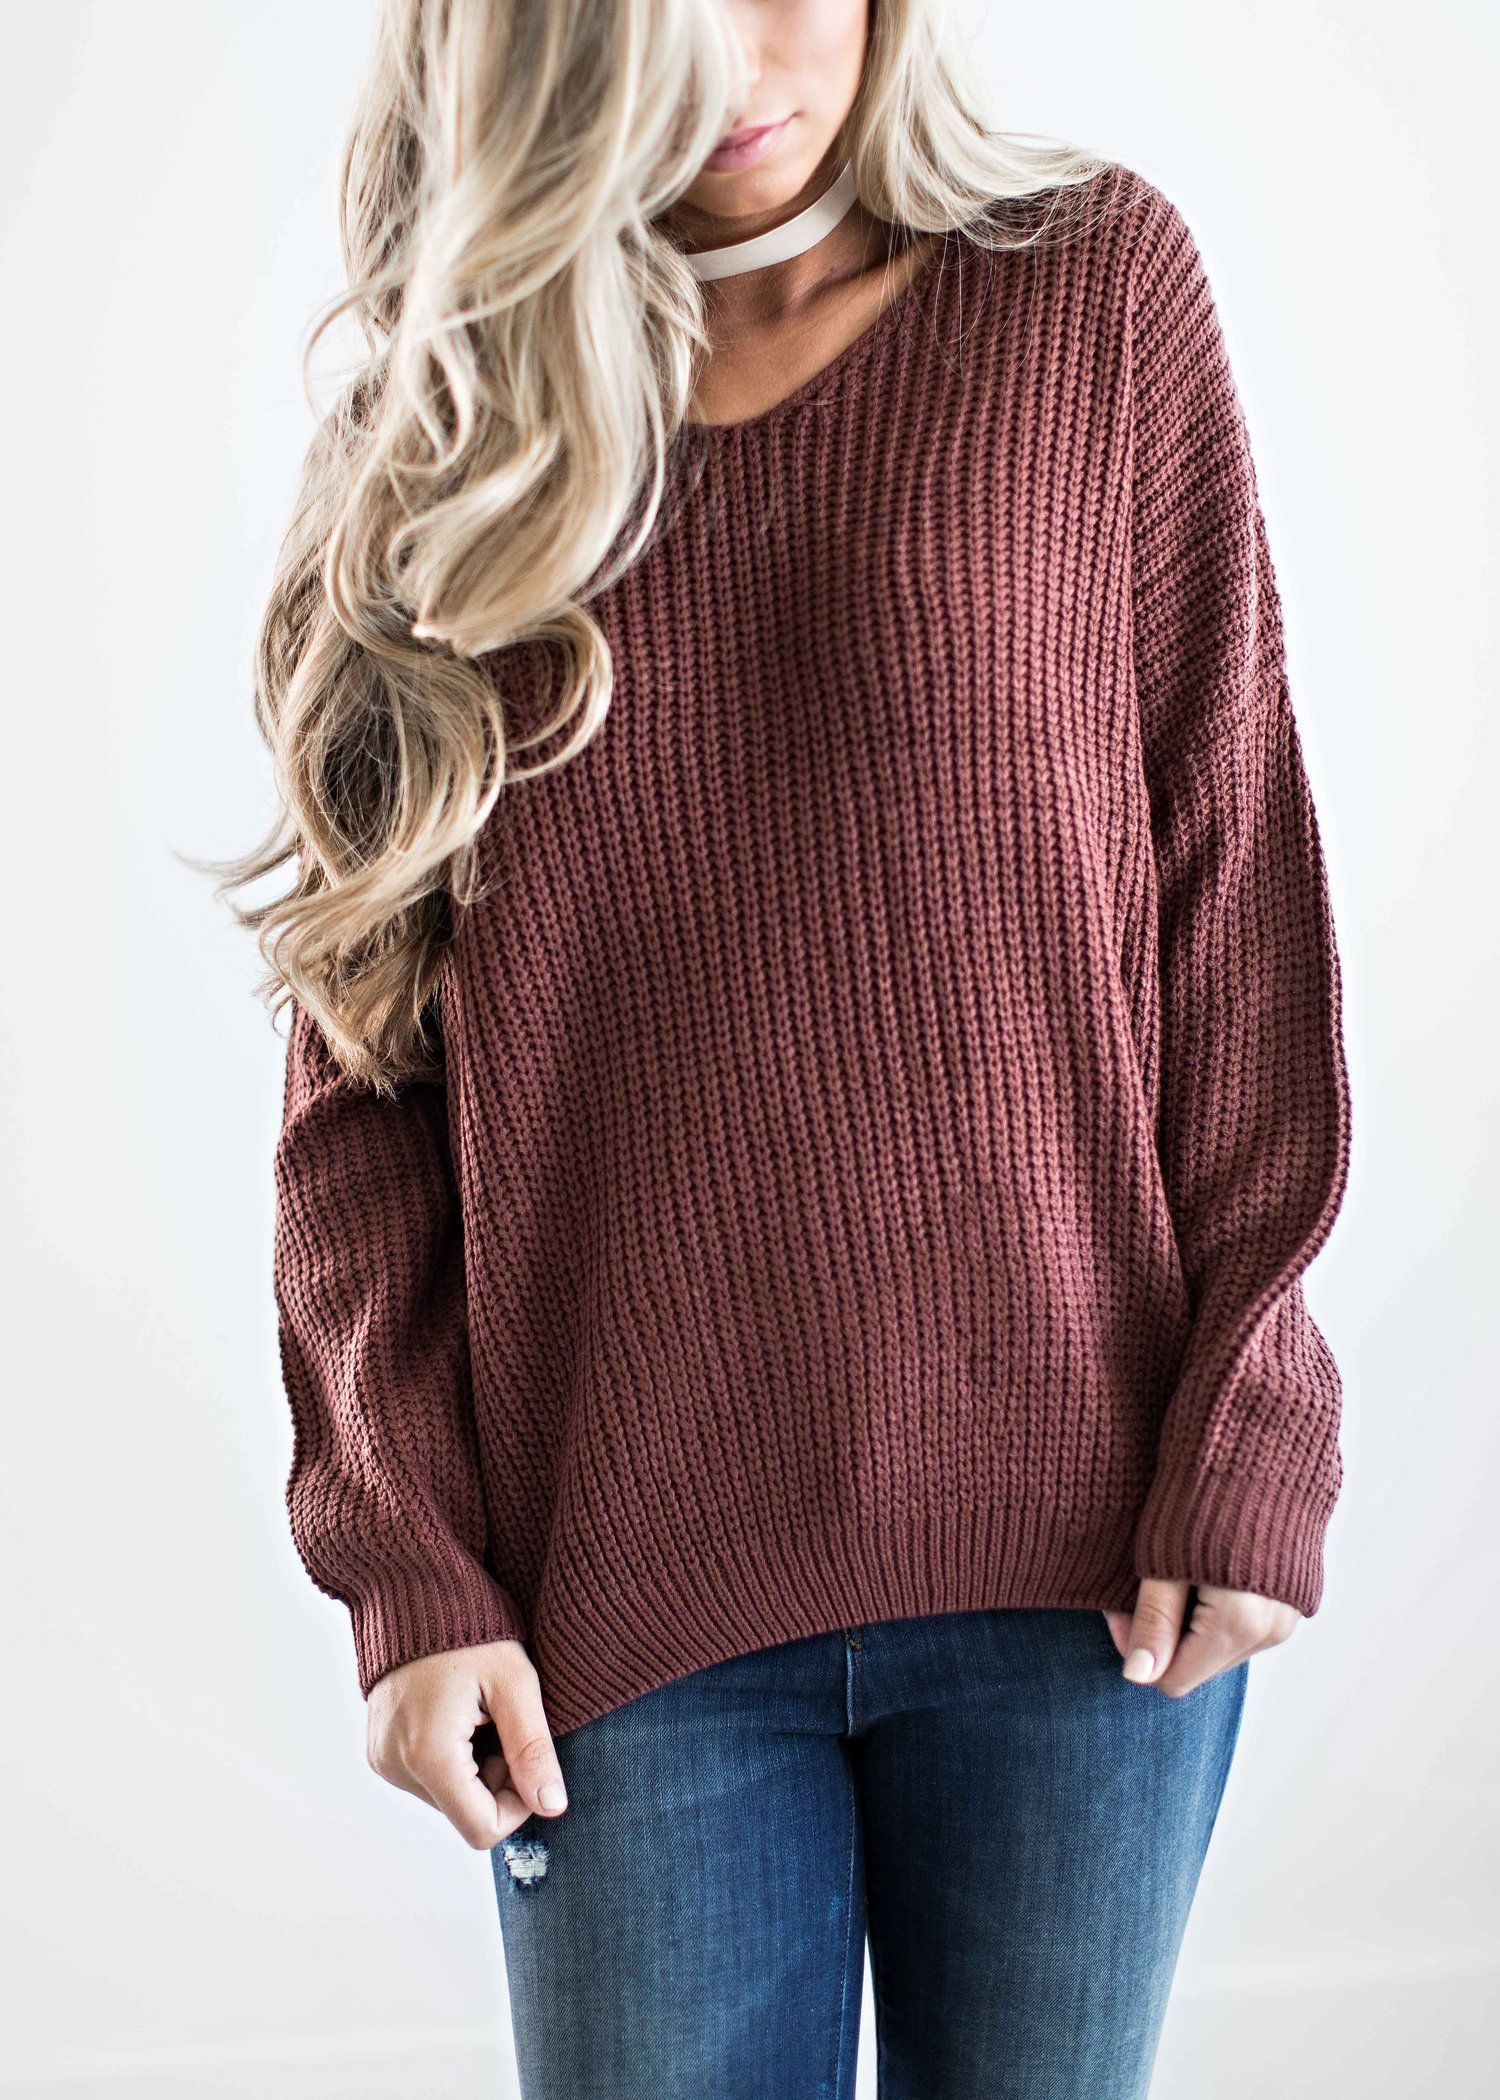 knit sweater, fall style, fall fashion, womens fashion, shop ...